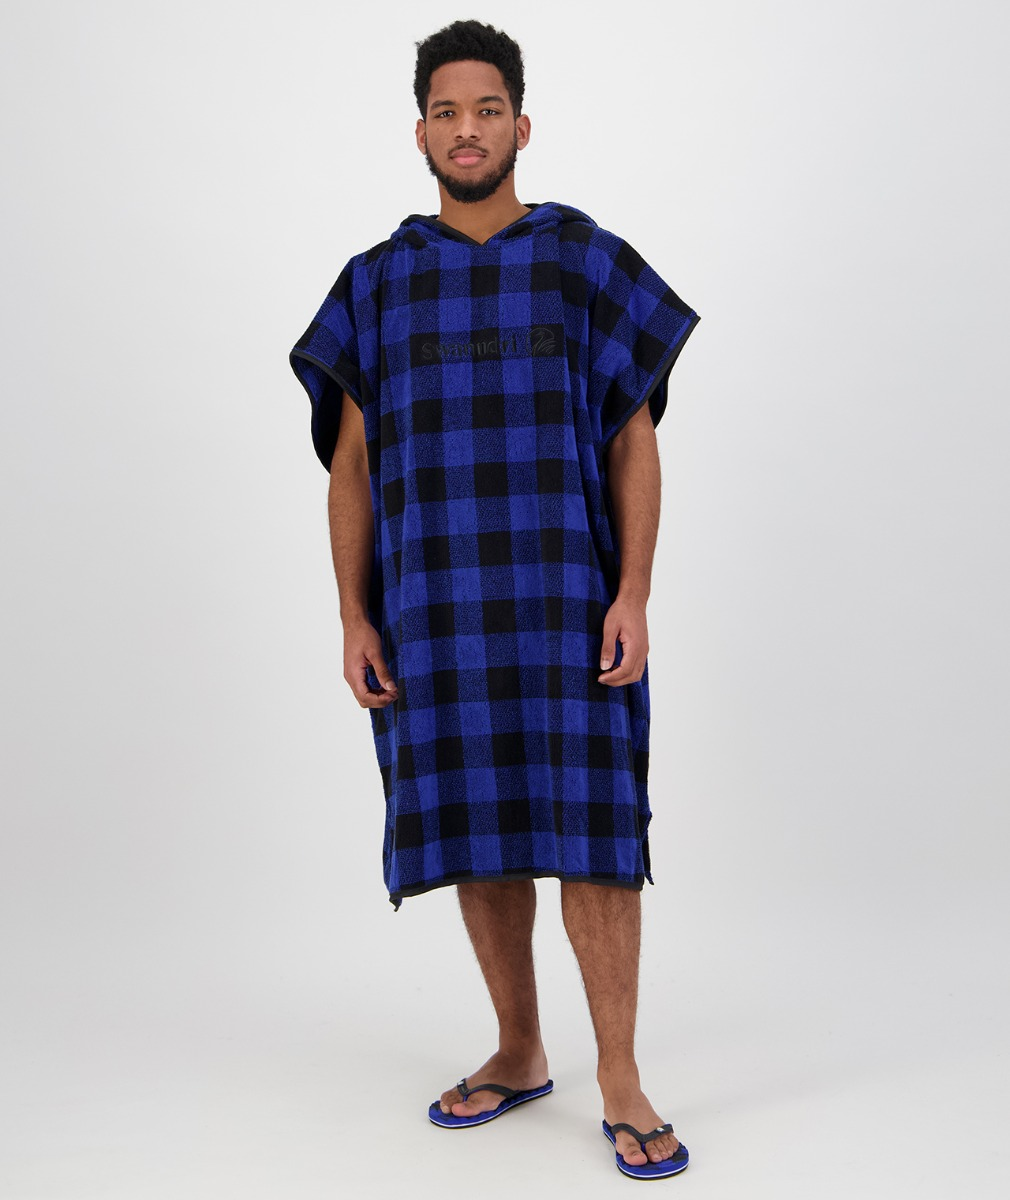 Swanndri Hooded Towel for Adults in Blue/Black